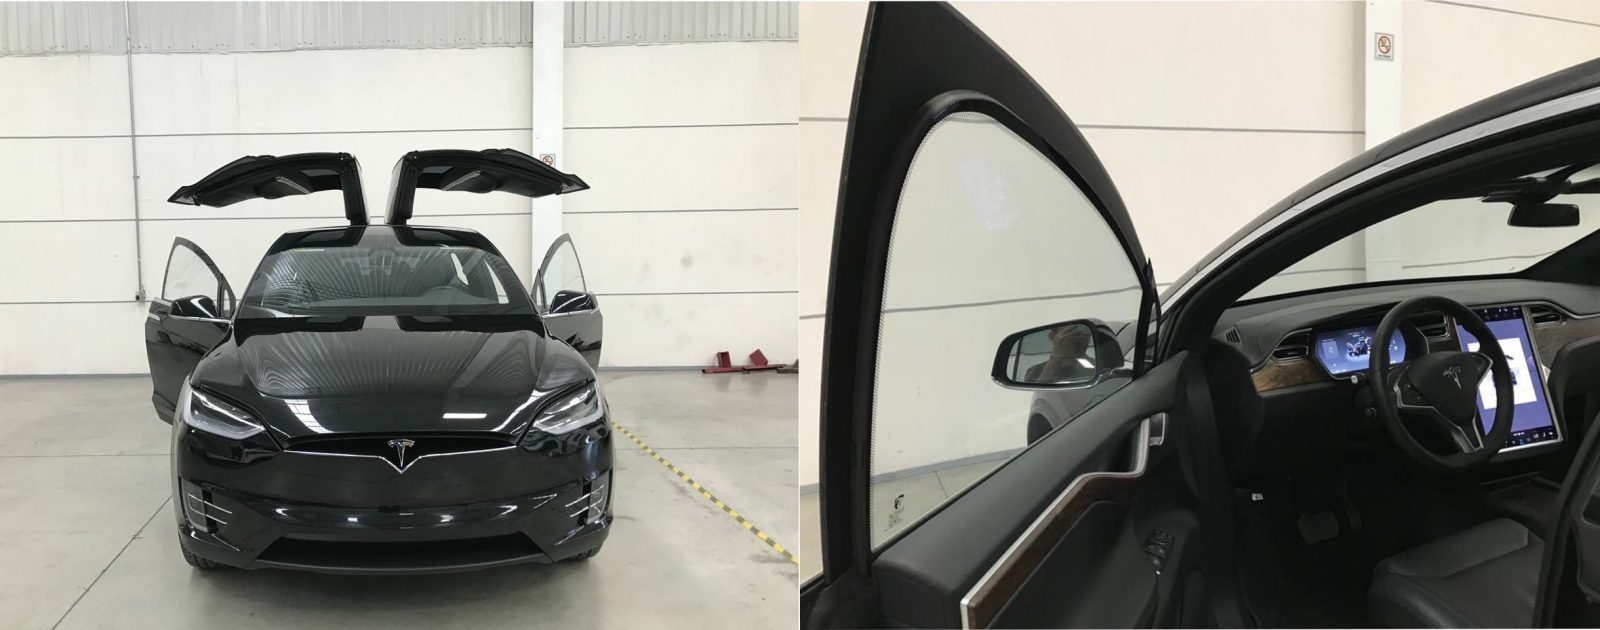 First look at a bulletproof Tesla Model X armored vehicle